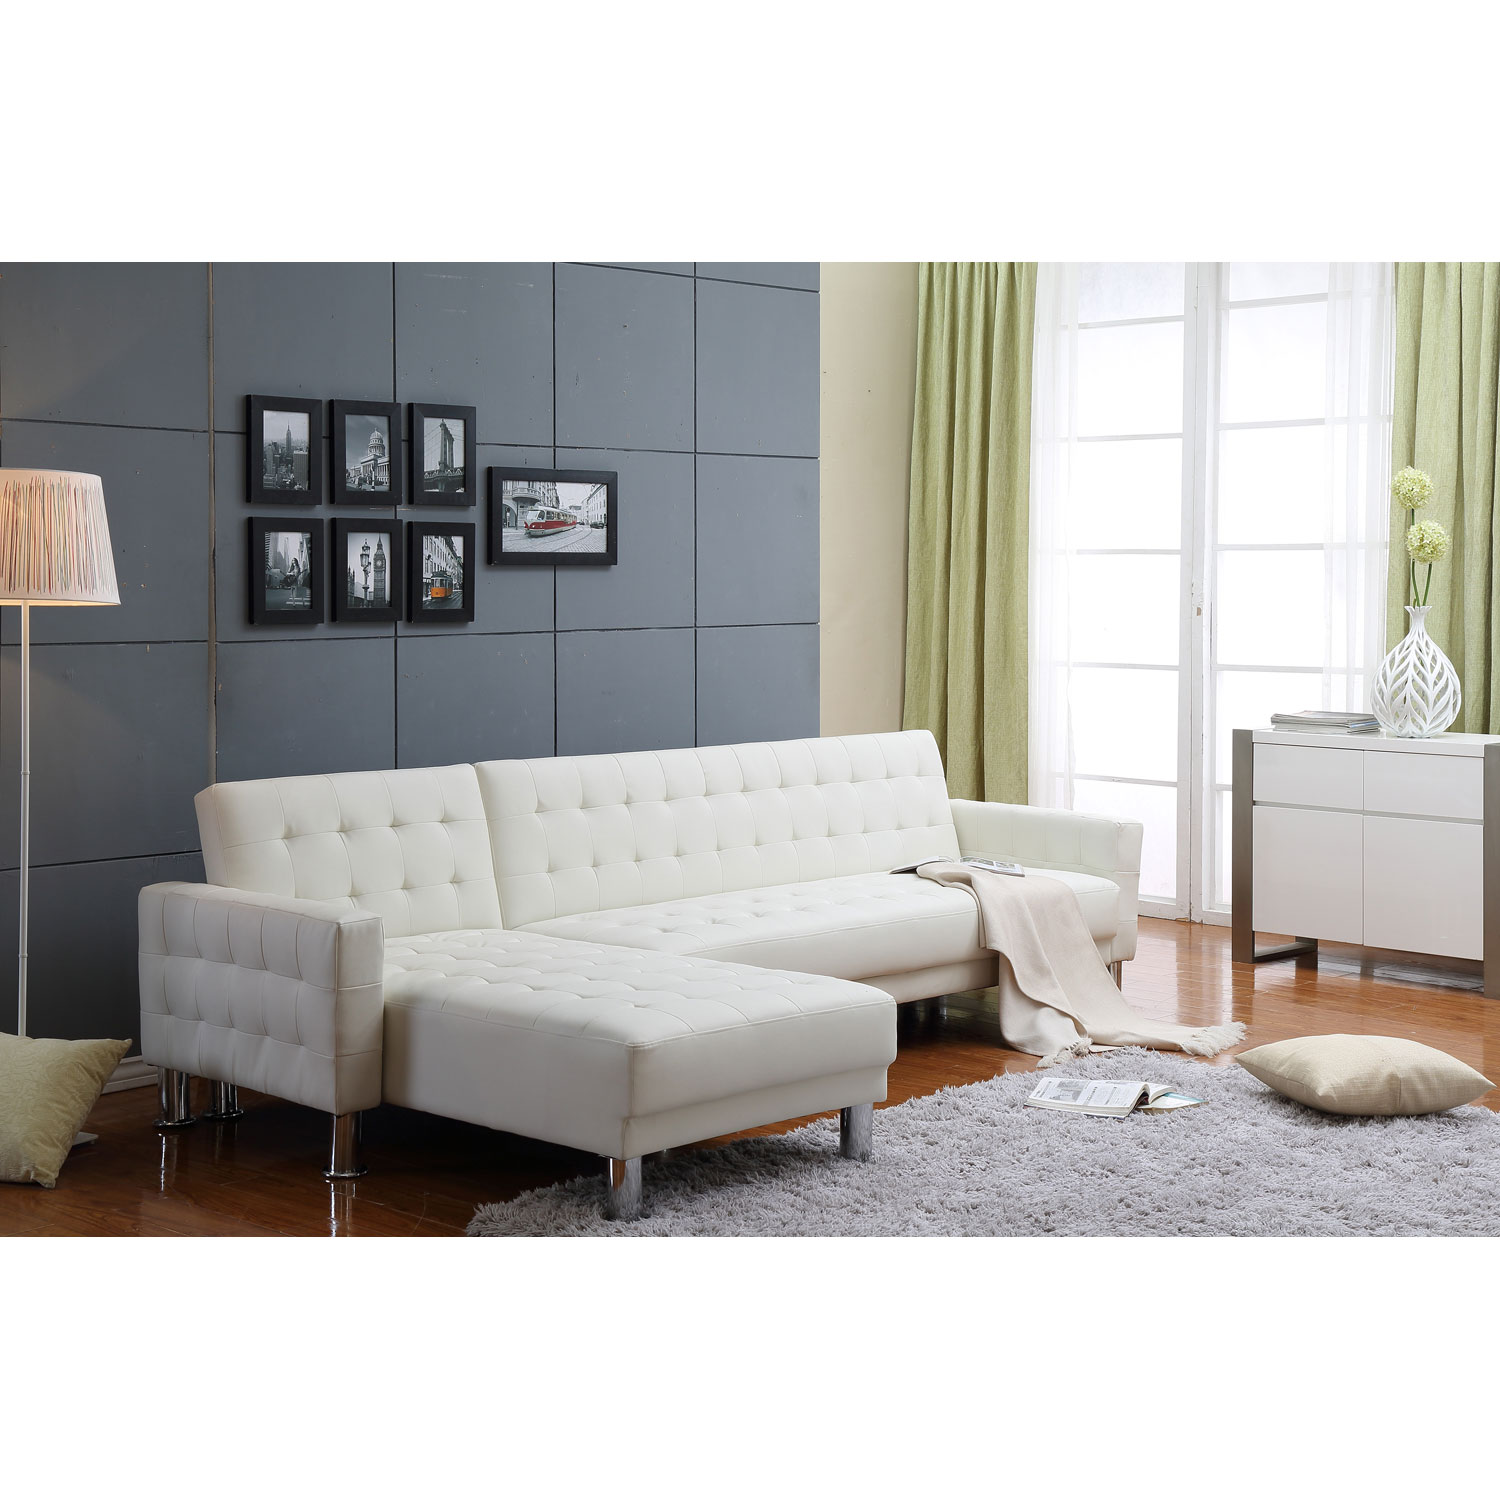 white leather sectional sofa bed photo - 5